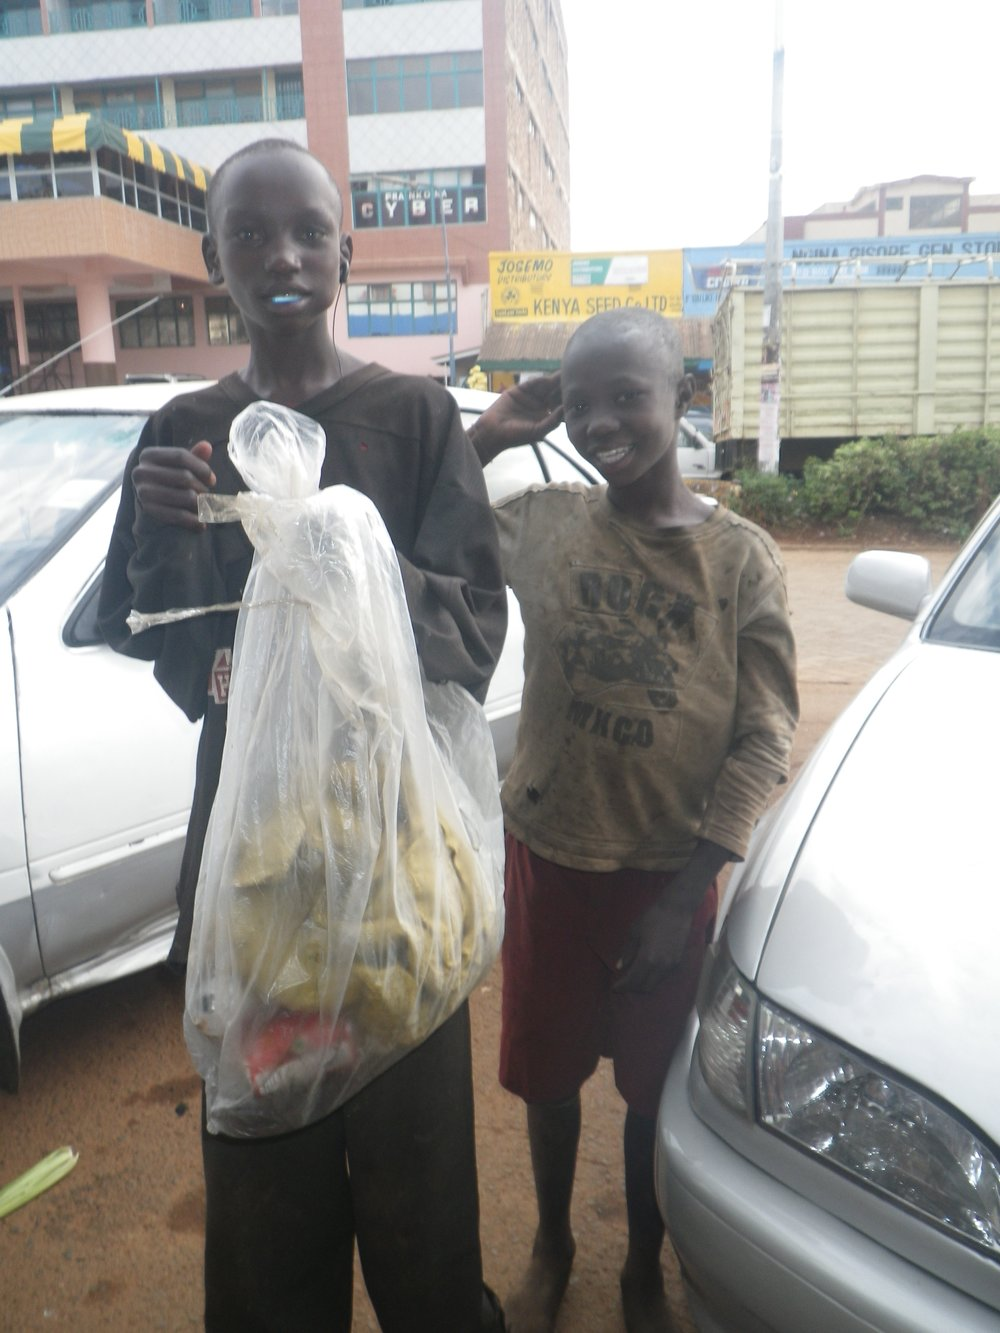 Two of the many street boys in Kisii. Daniel Mogaka (left) and Brian (right). Daniel had lived in Kisii for 6 years, and Brian is only 9 years old.